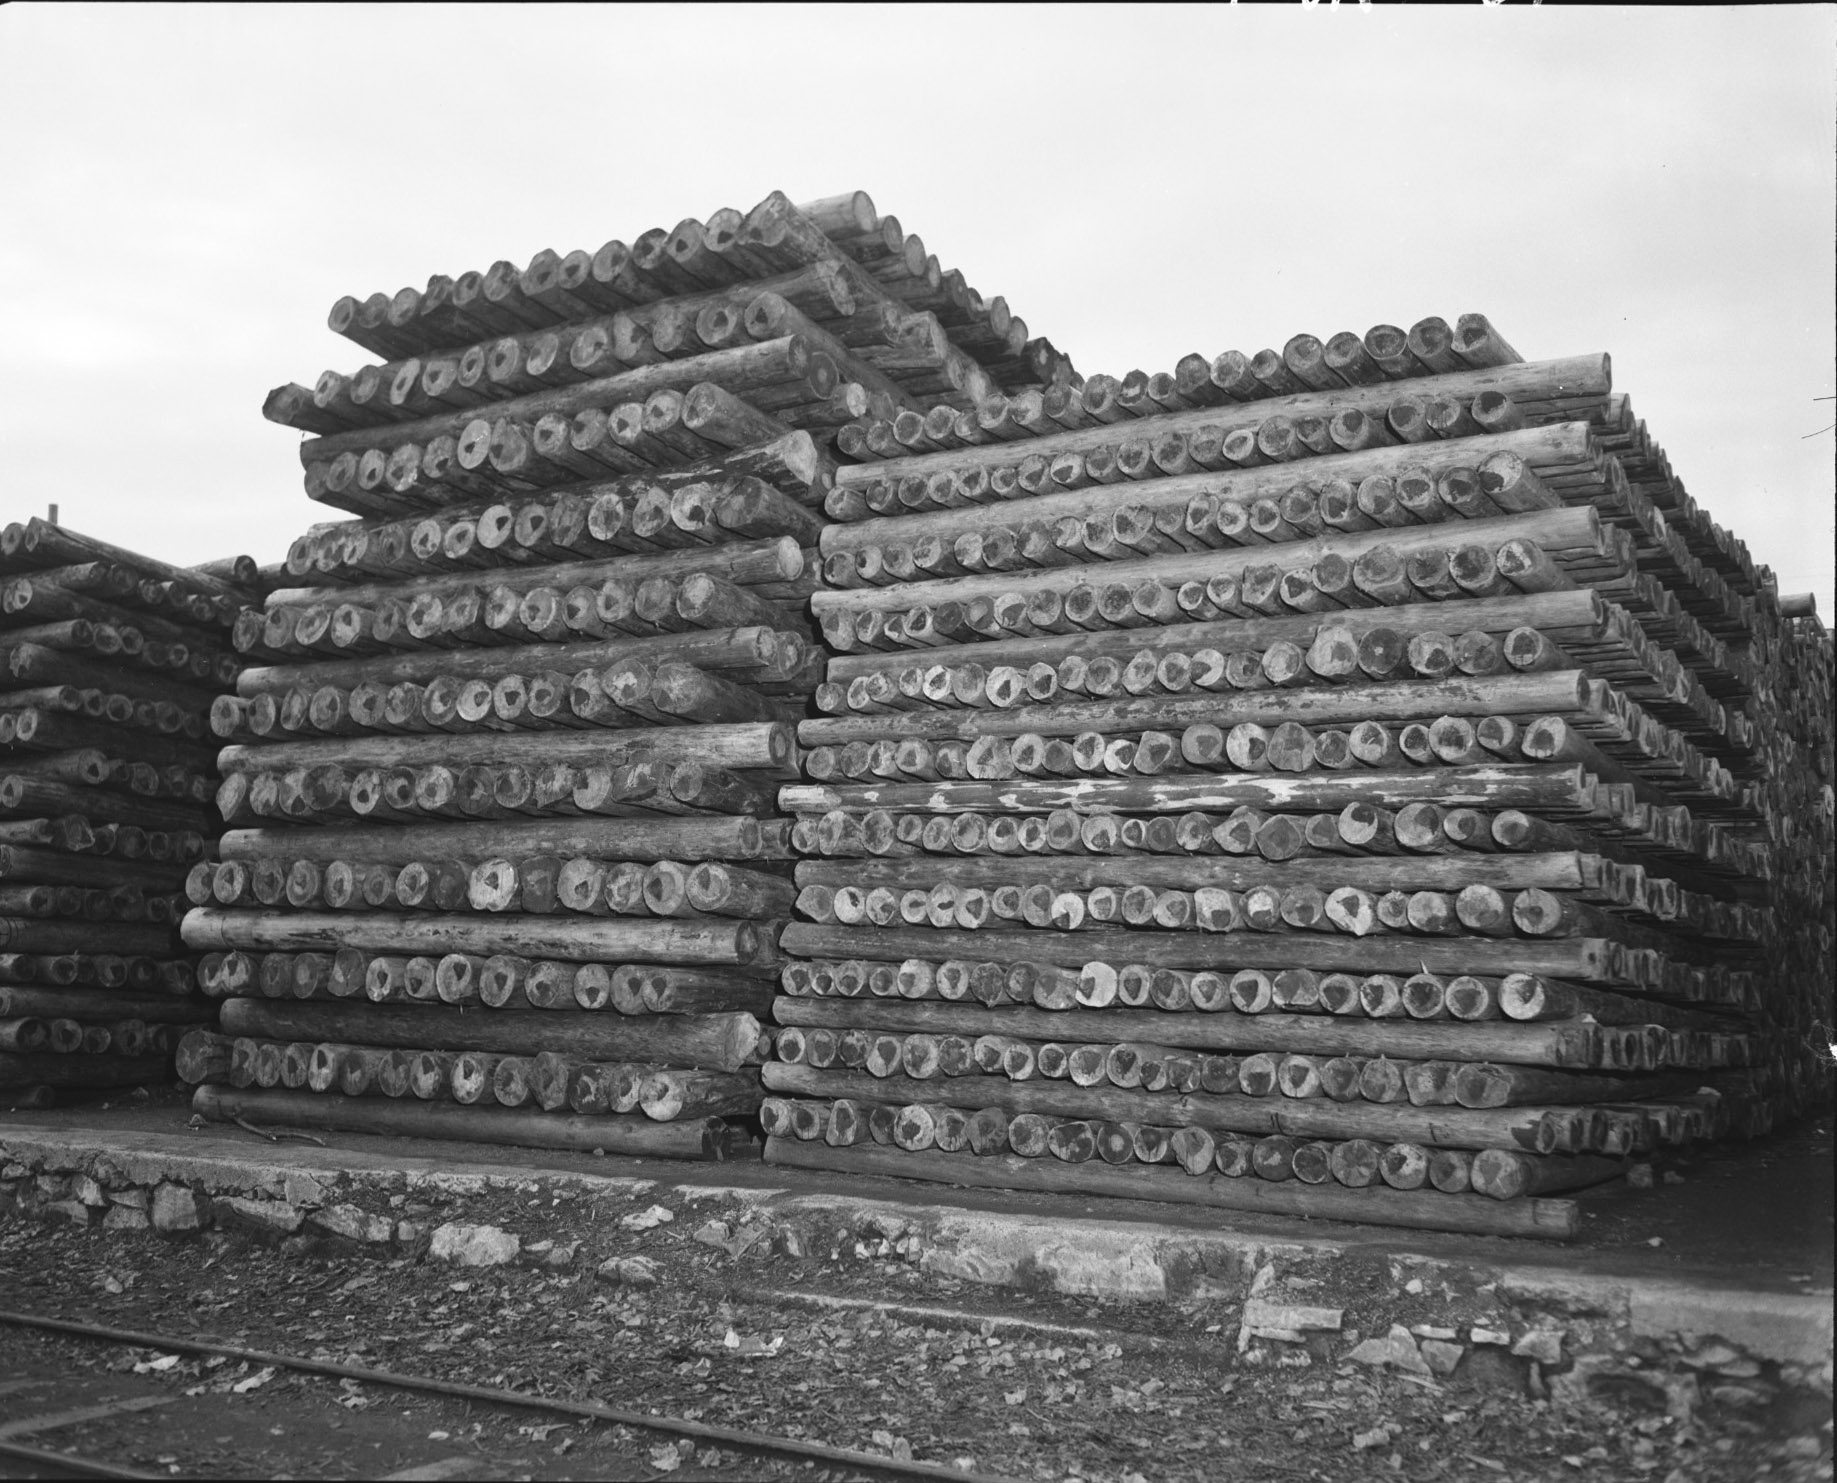 Roubaix Wool and Housing] - [Marshall Plan Revives Roubaix, the Capital of the French Wool Industry